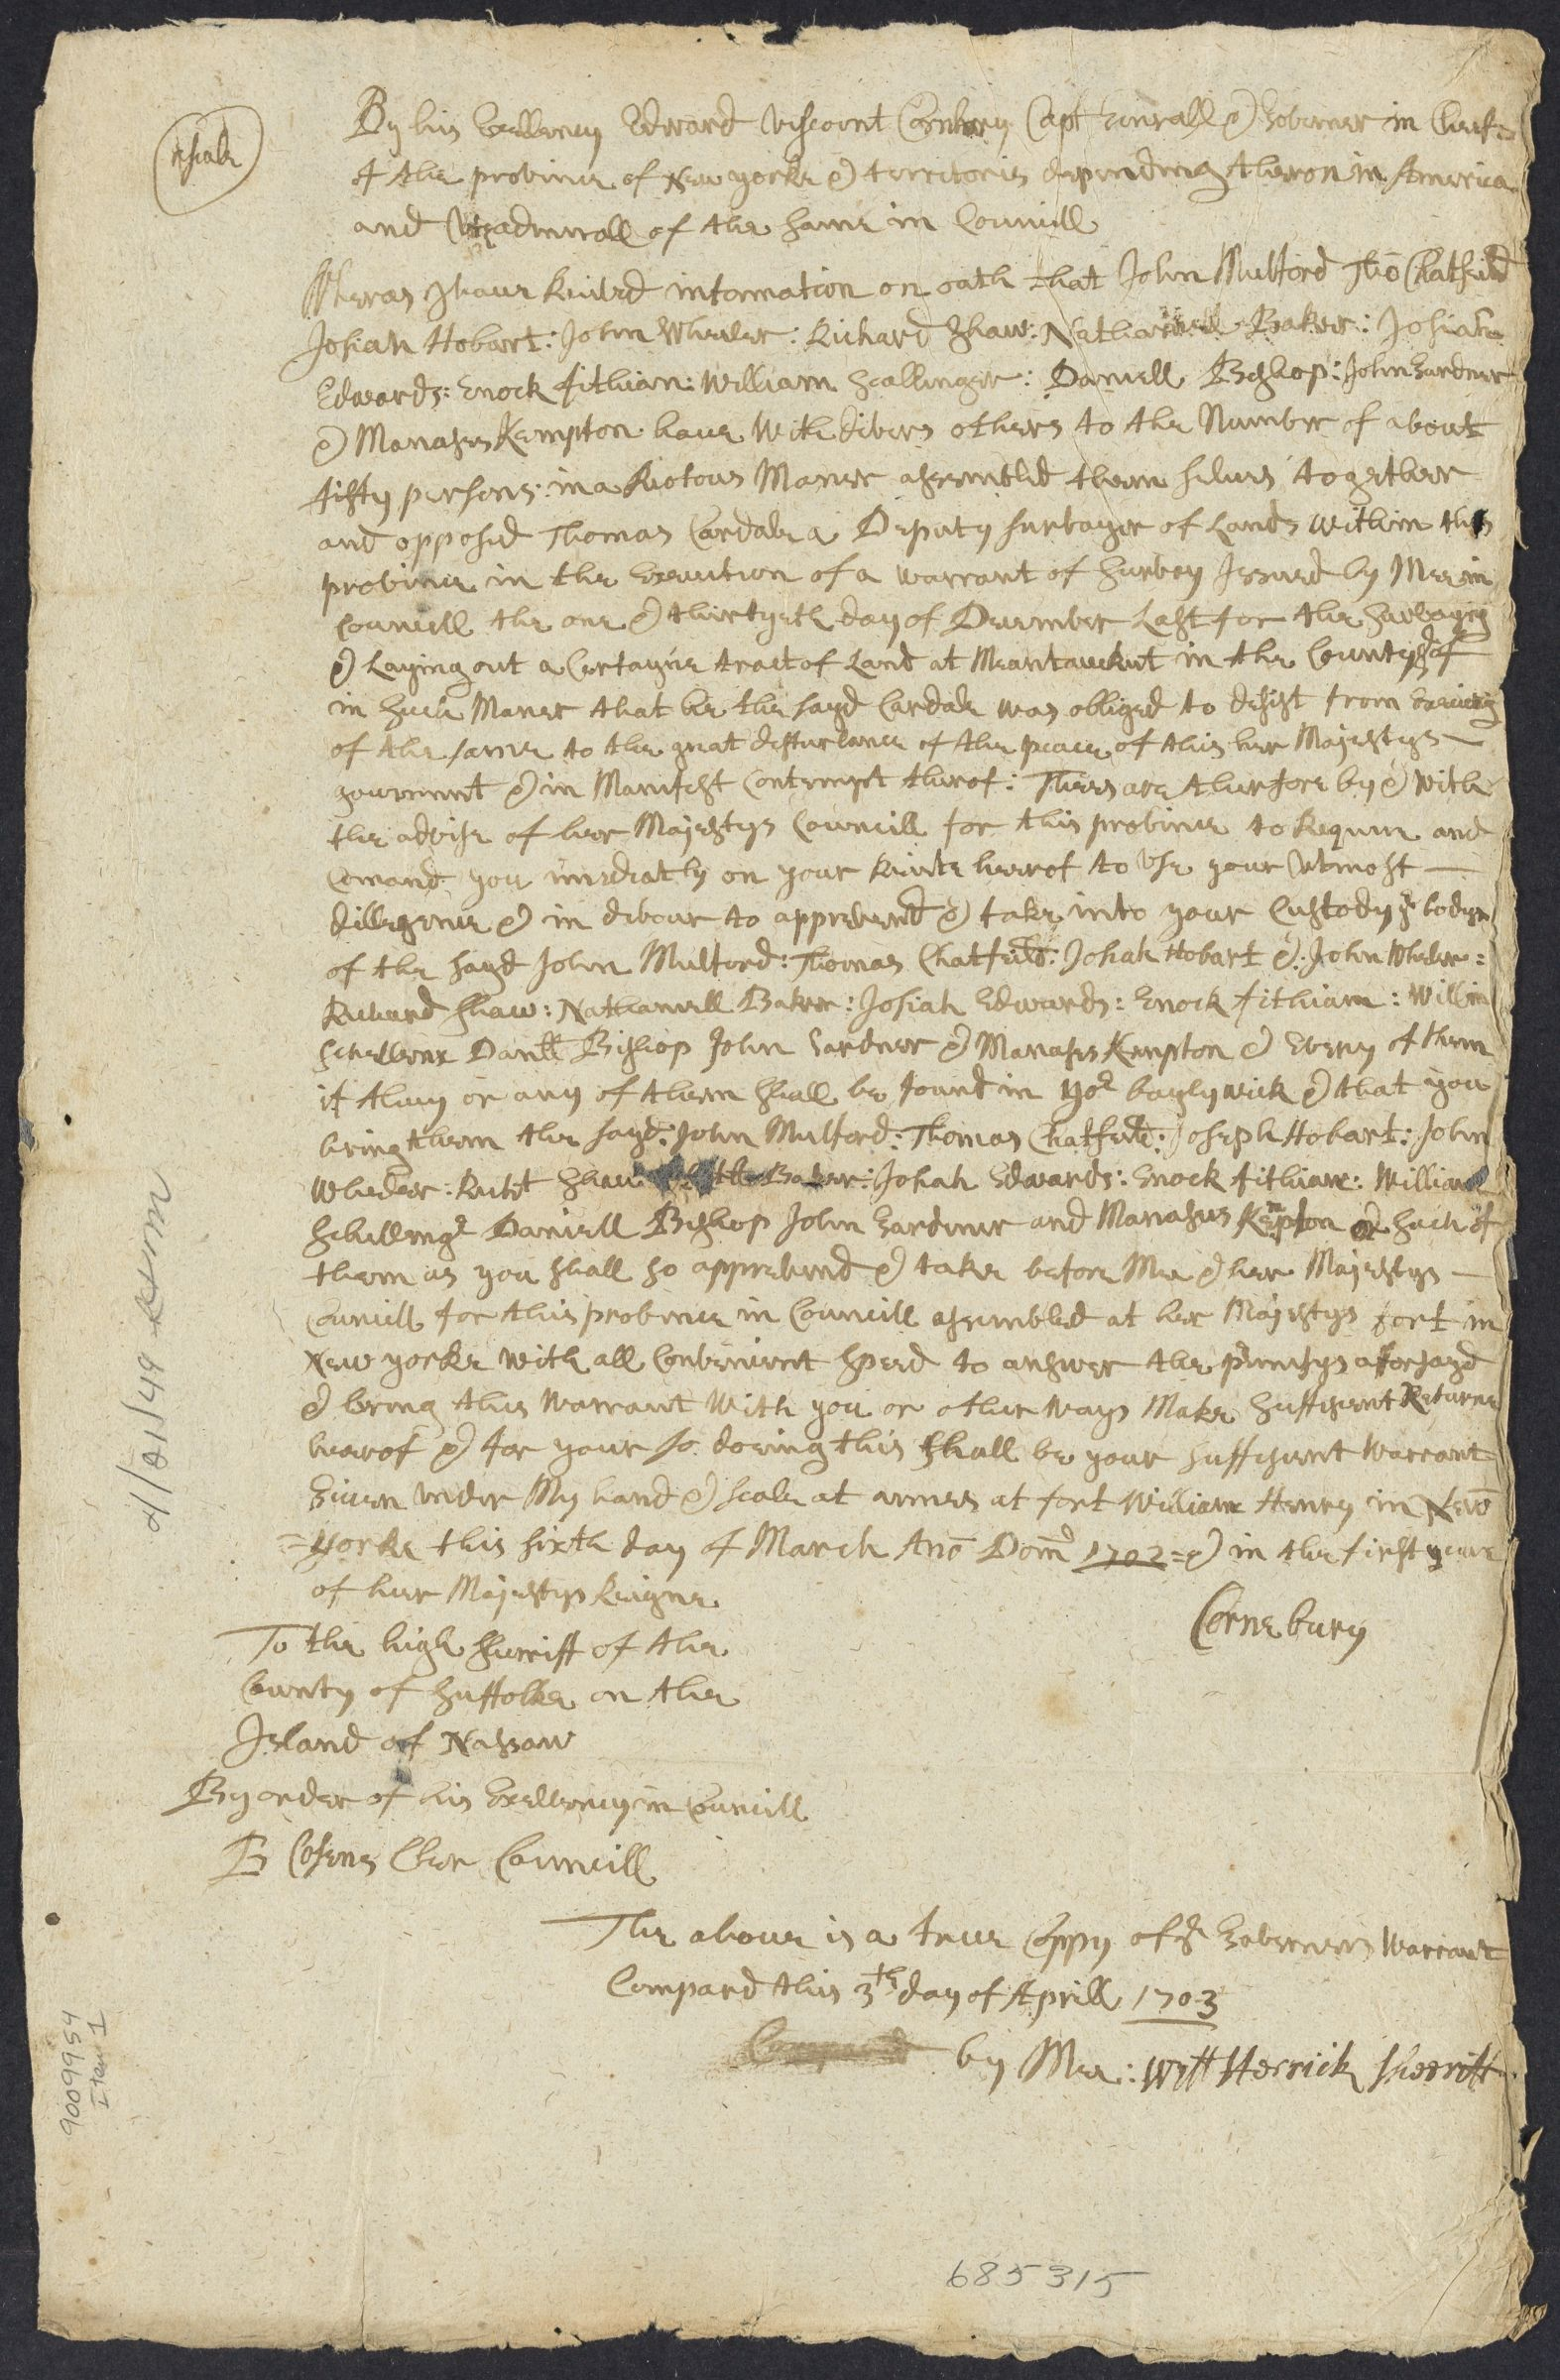 Warrants from the governor and chief justice of New York, 1703-1704